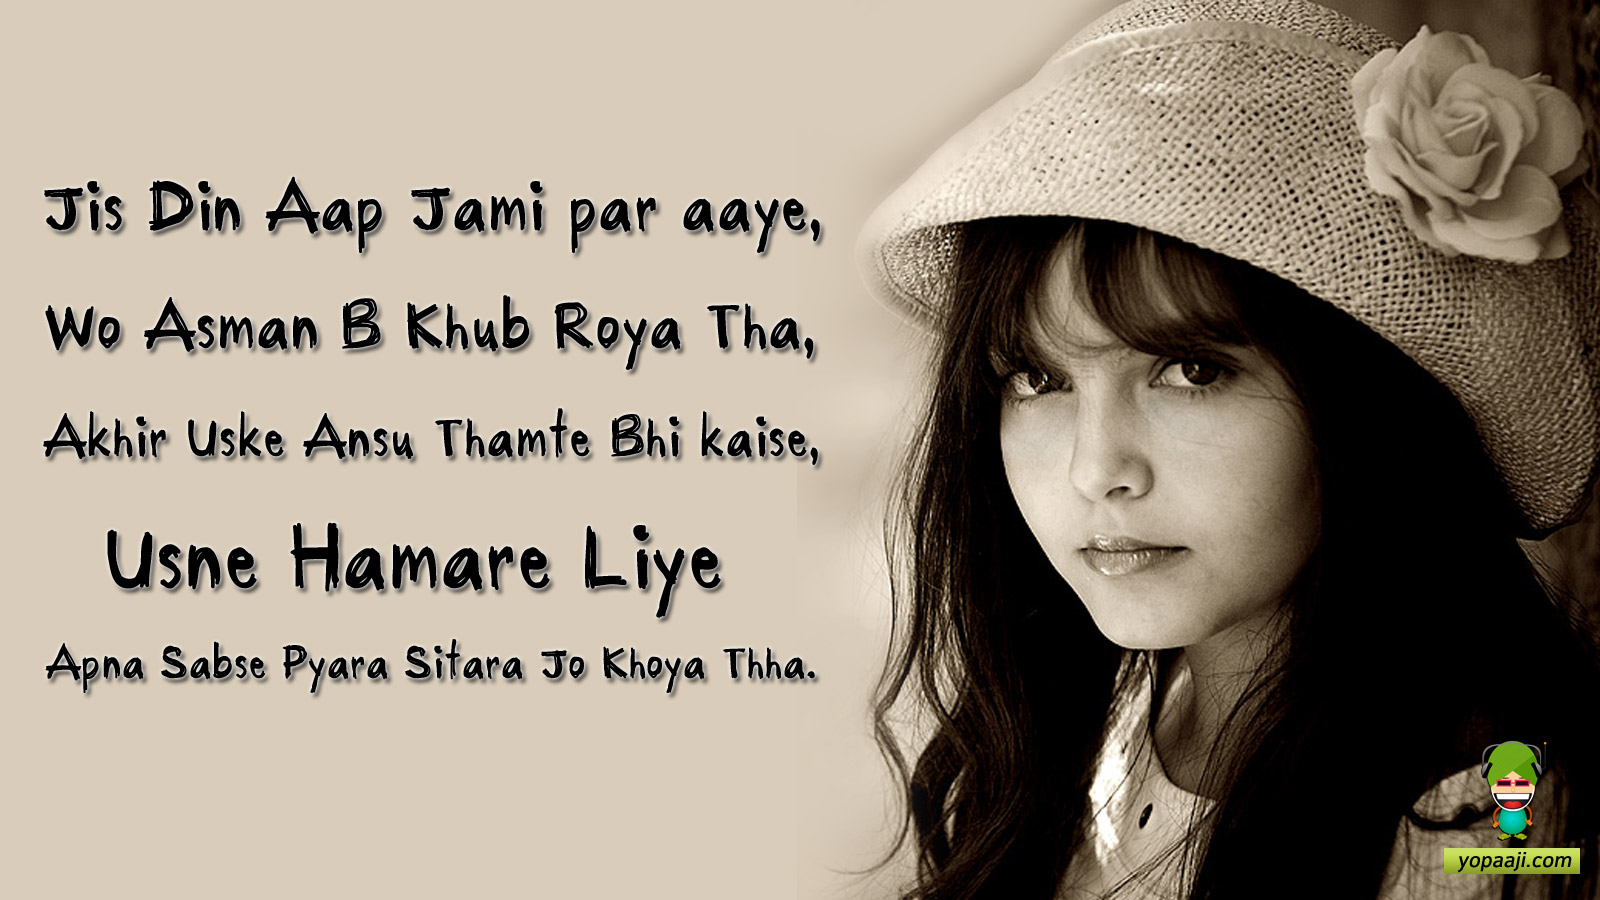 Wallpaper Love Sayri Image : Love SMS In Hindi Messages English In Urdu In Marathi Images Bangla Wallpapers In Tamil ...